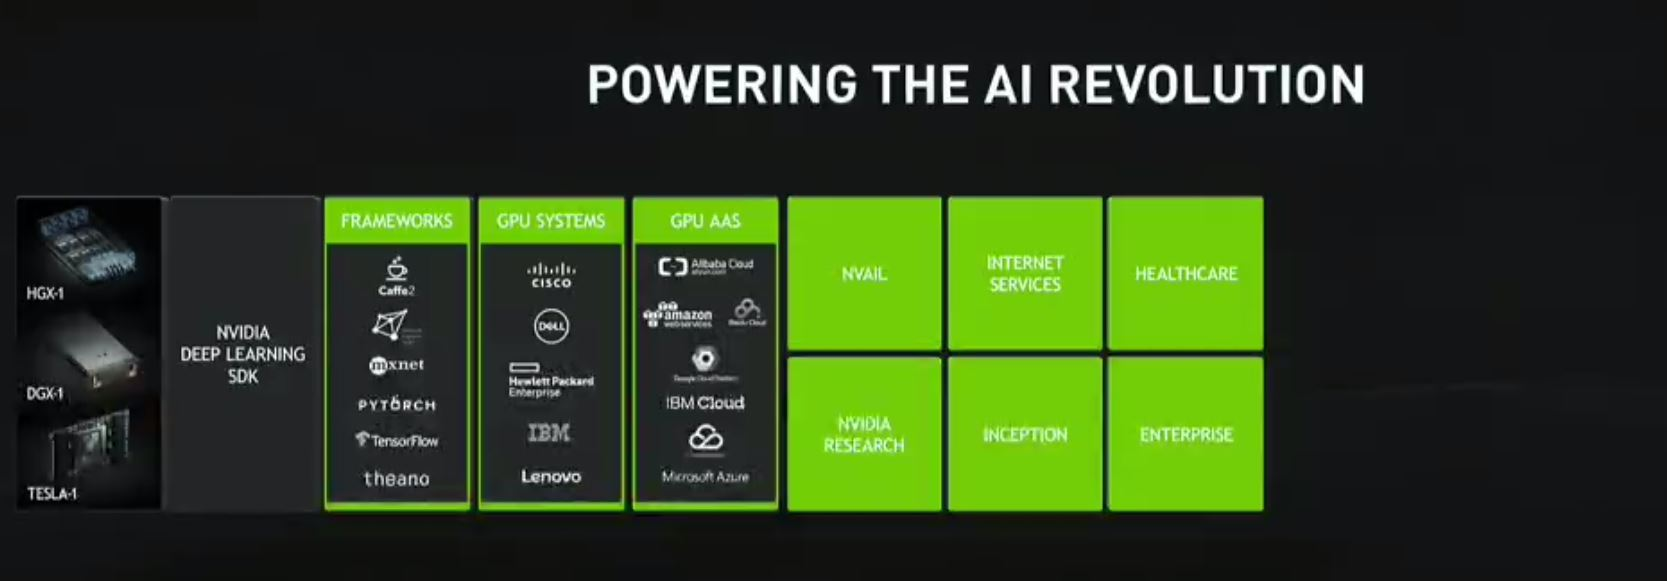 GTX 2017 Powering AI Revolution